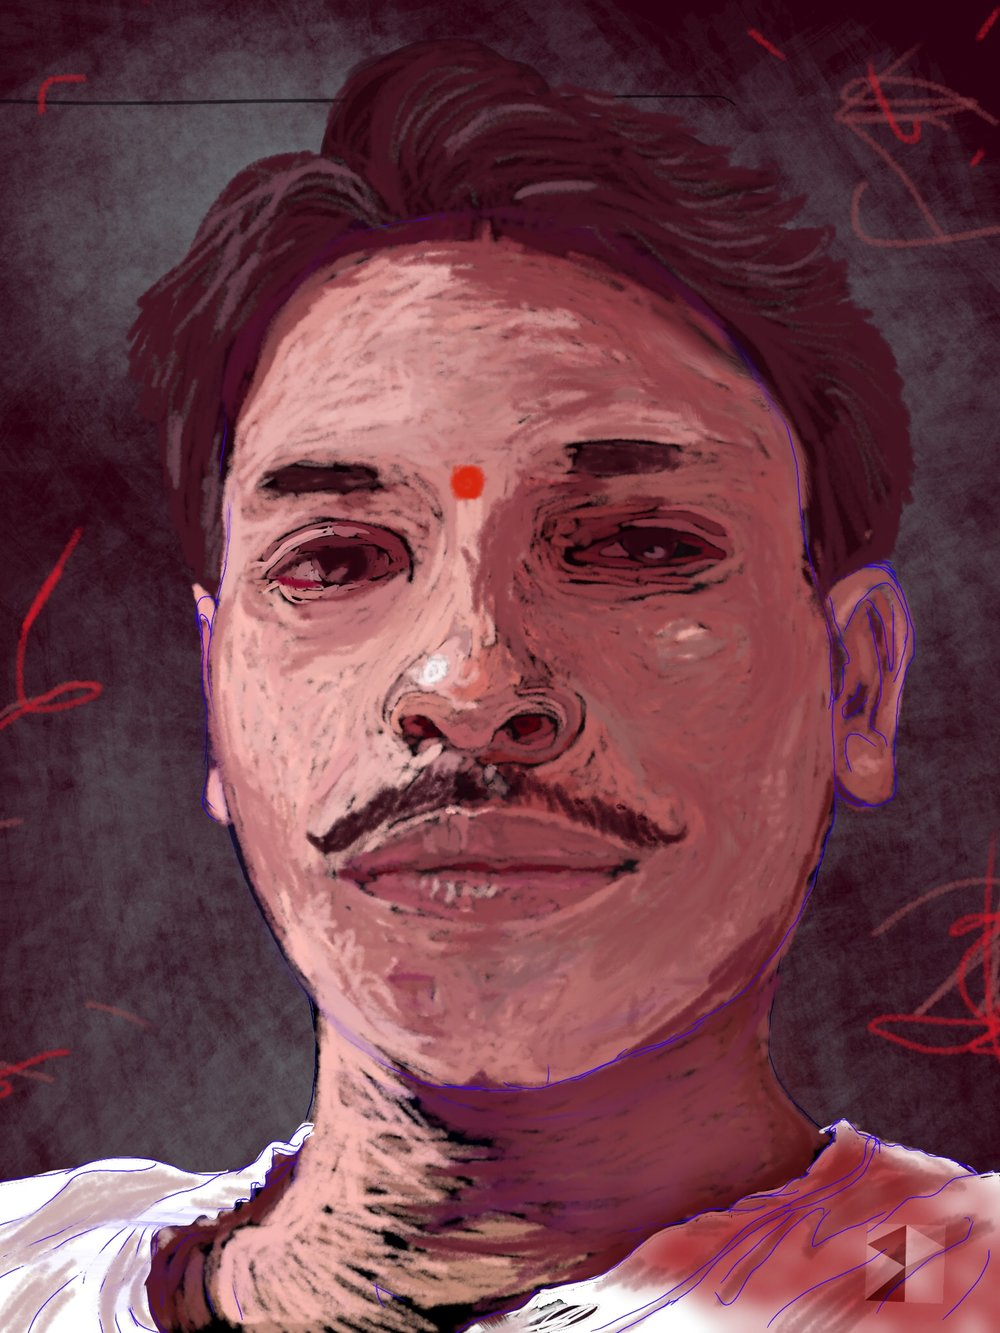 Mahesh,   FBSelfie, ProCreate, Pencil 53, Photoshop, iPad, Desktop Digital Image Dimensions Variable © SP/MWW.2015